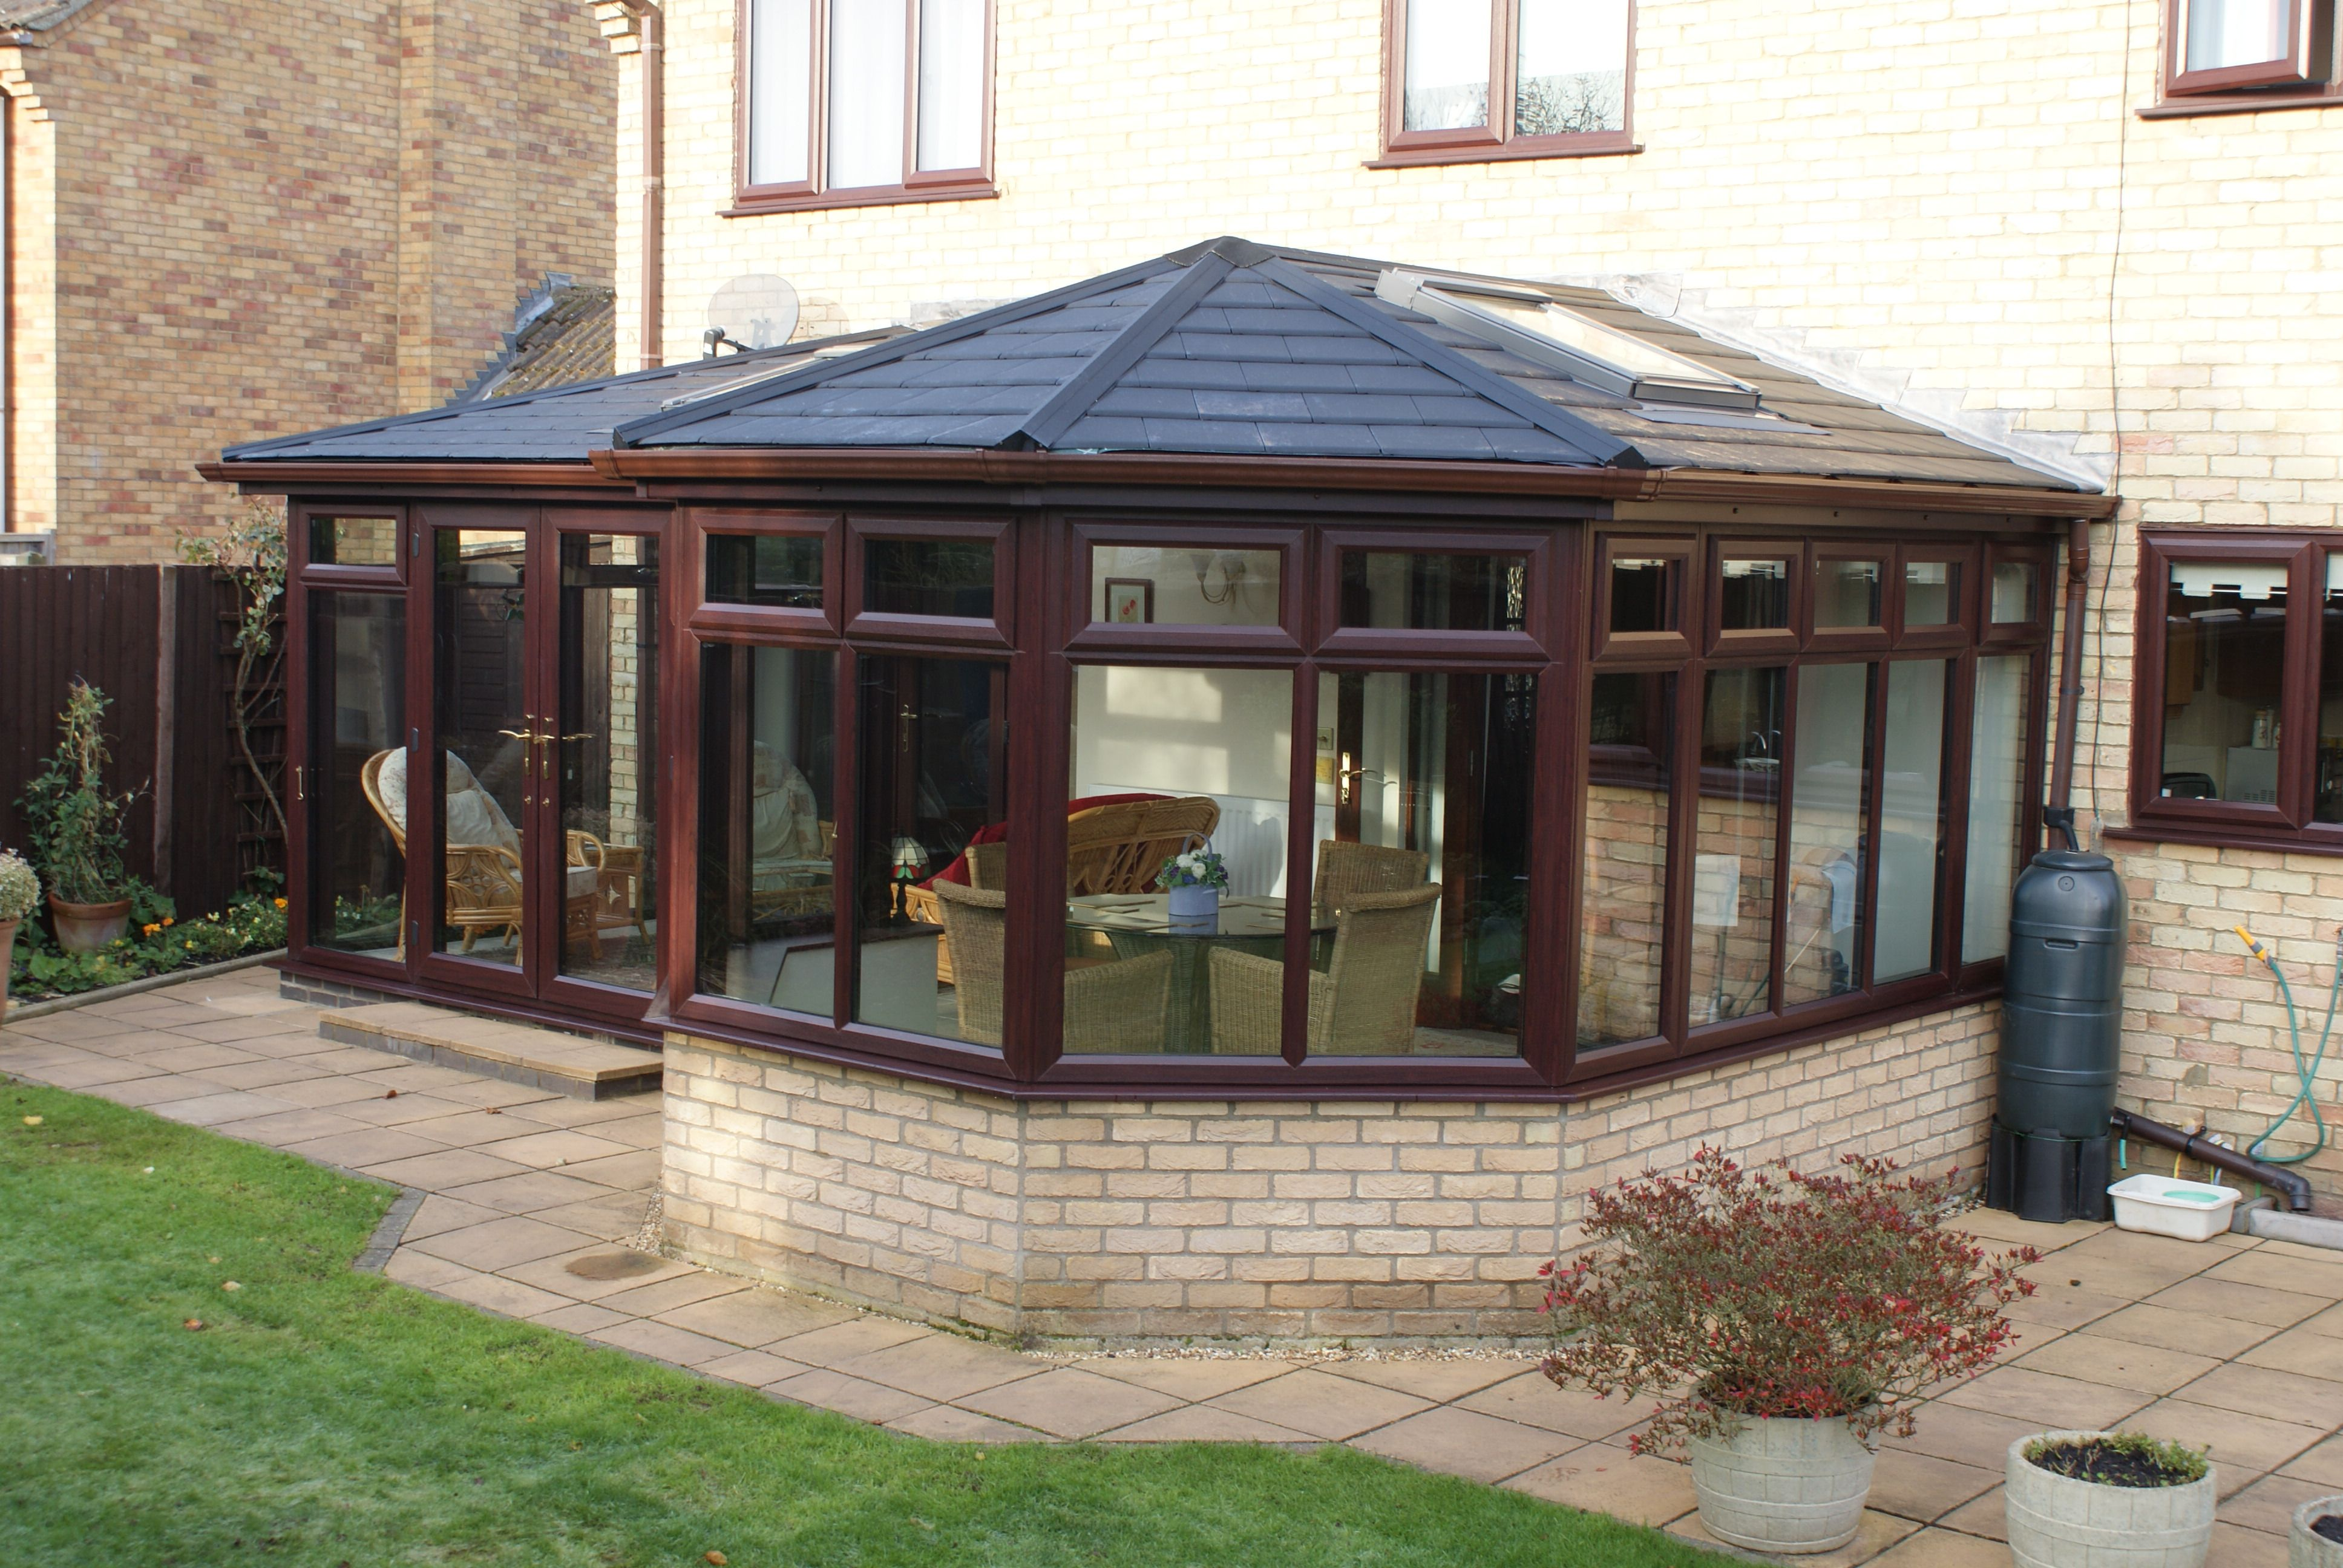 How To Replace A Conservatory Roof With Tiles Sunroom Designs Amazing Spaces Conservatory Roof